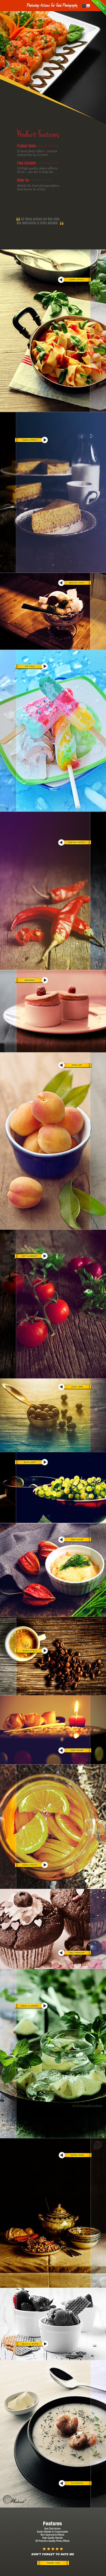 GraphicRiver Actions for Food Photography 11578369